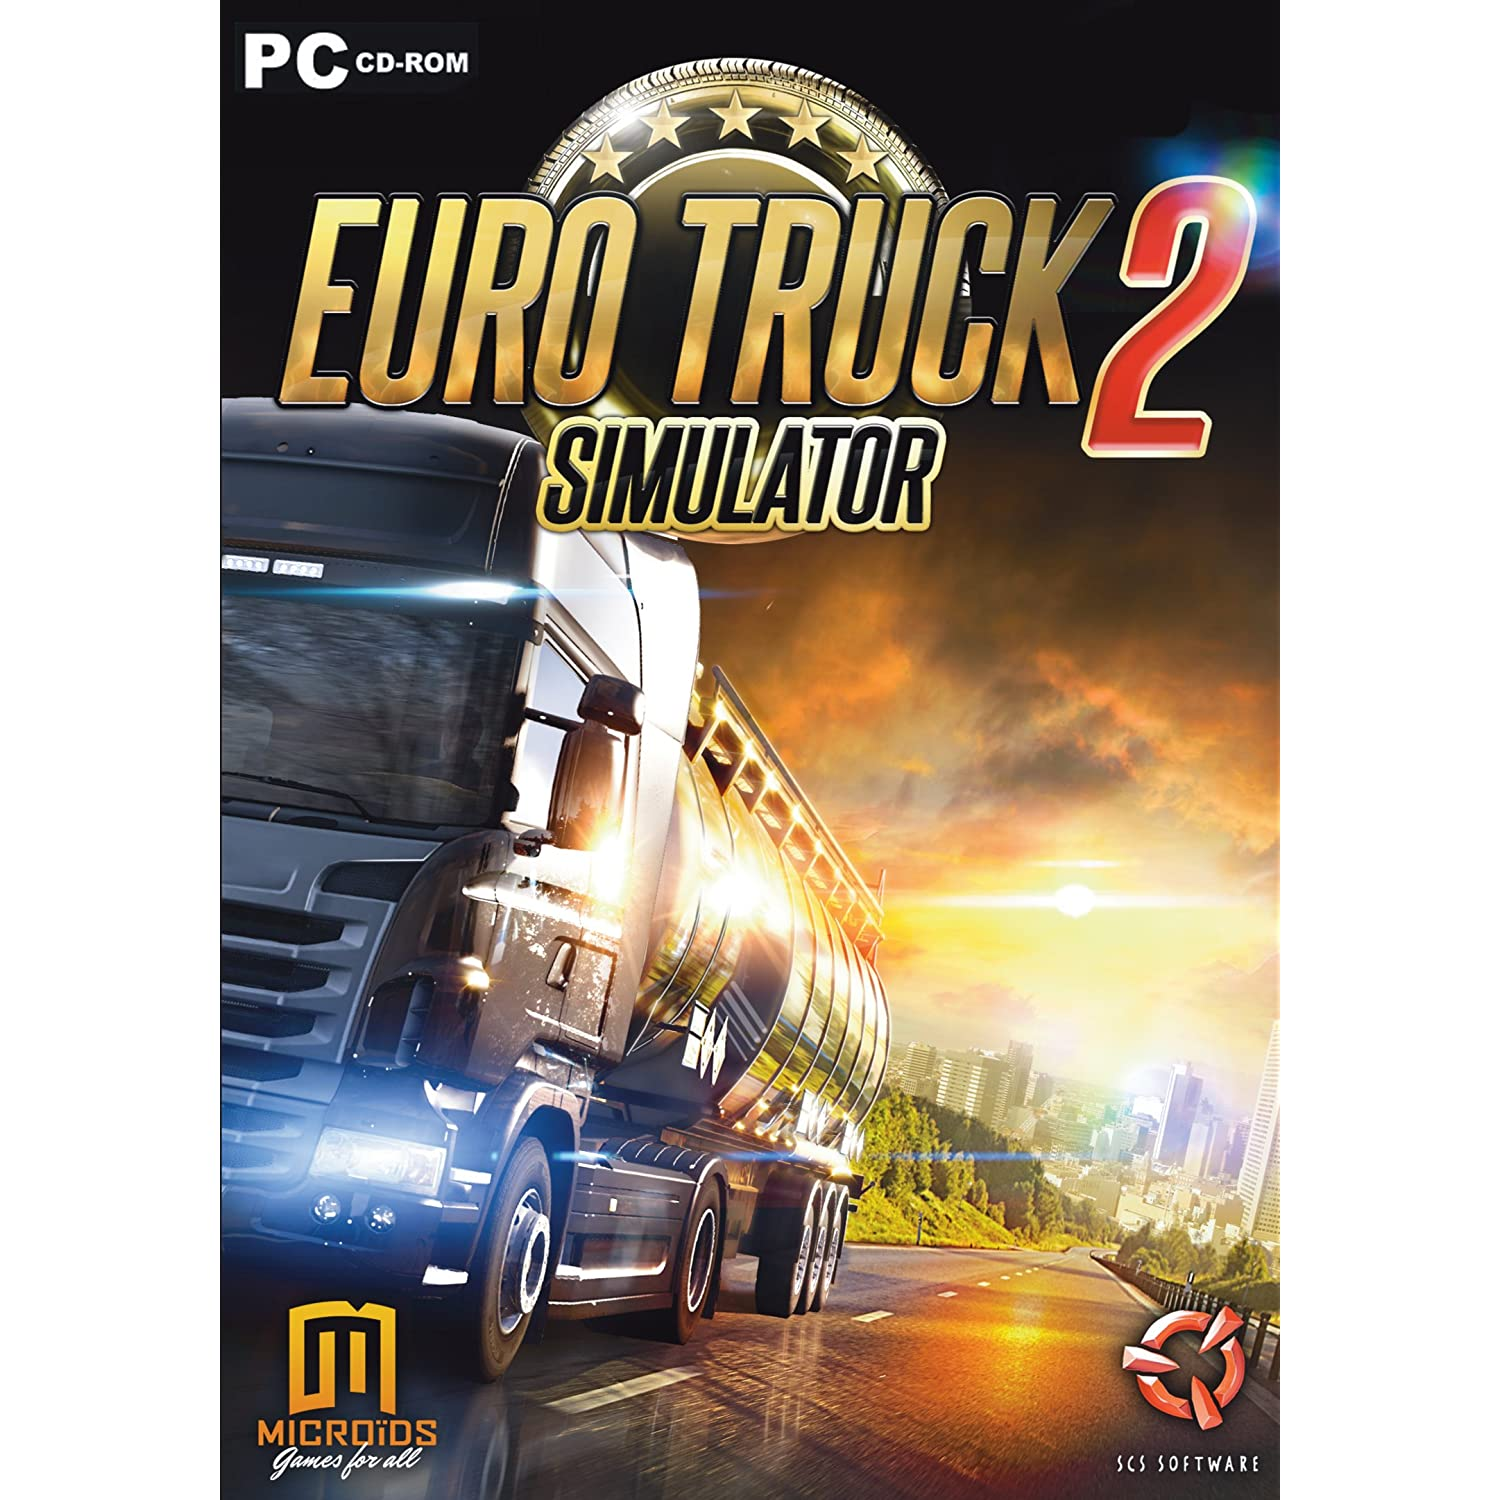 Euro Truck Simulator 2 + patch 1.1.1 + Serial [PC][FRENCH]